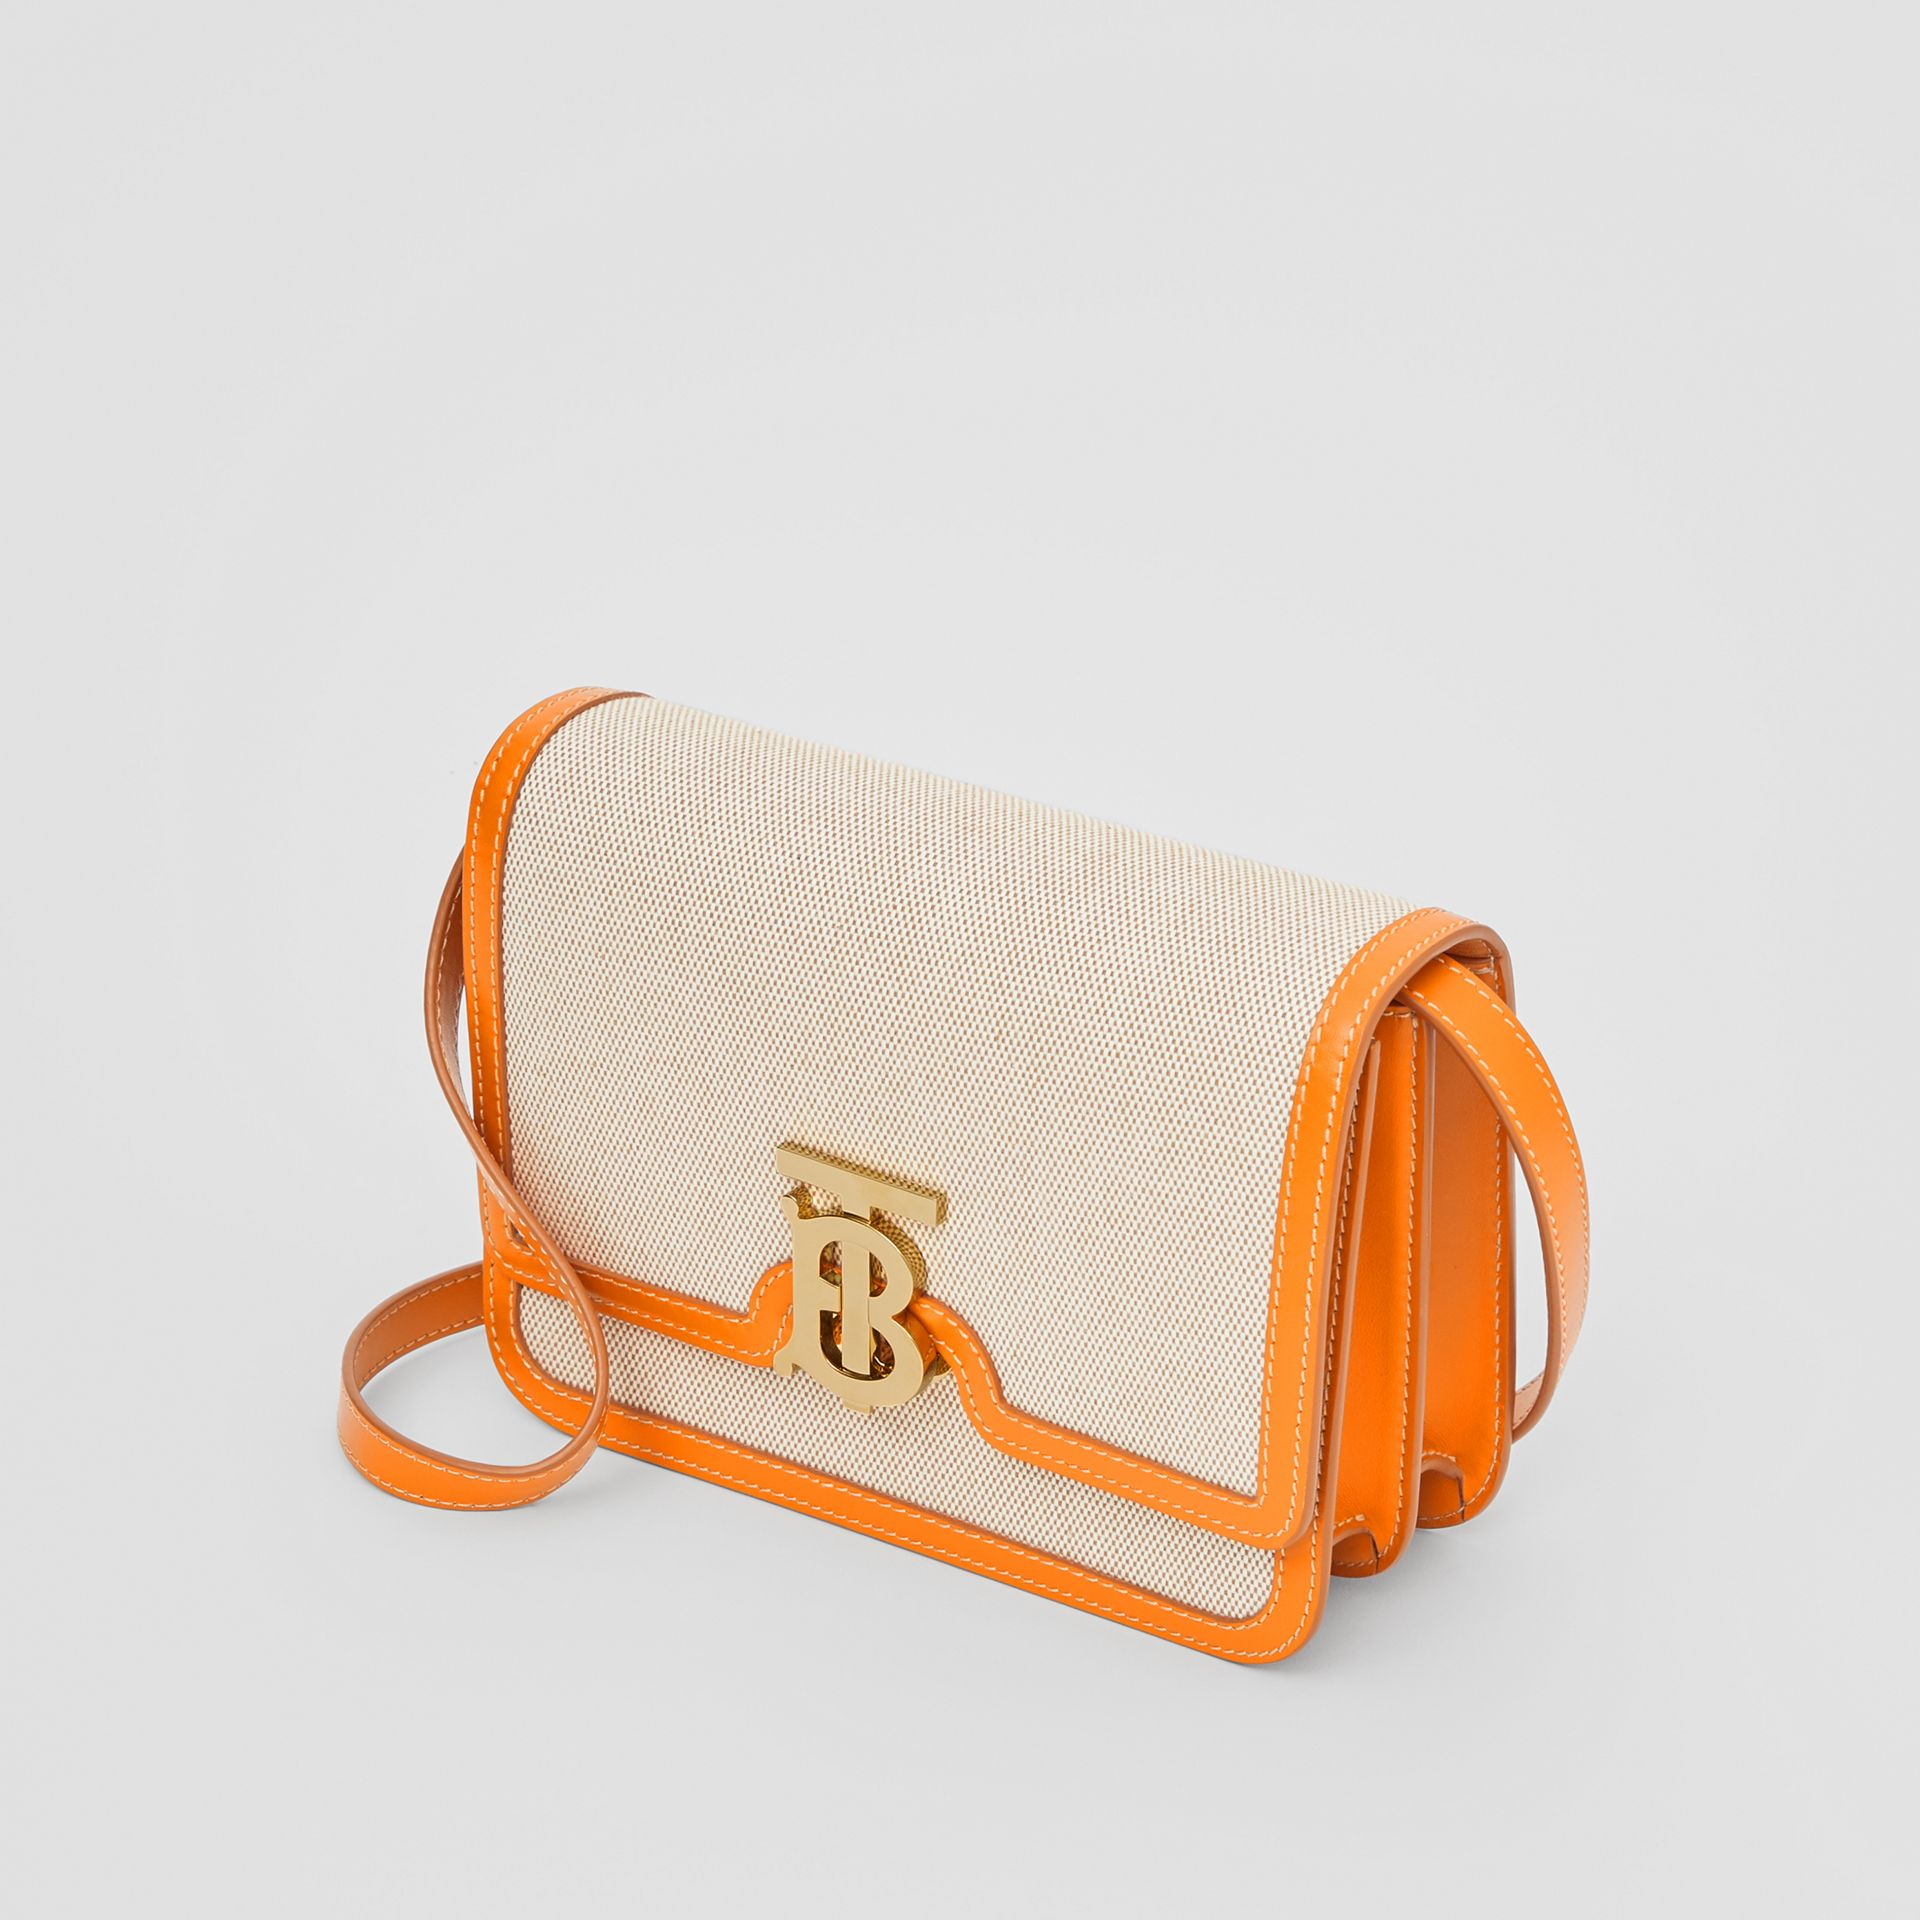 Small Two-tone Canvas and Leather TB Bag in Orange - Women | Burberry Australia - gallery image 2